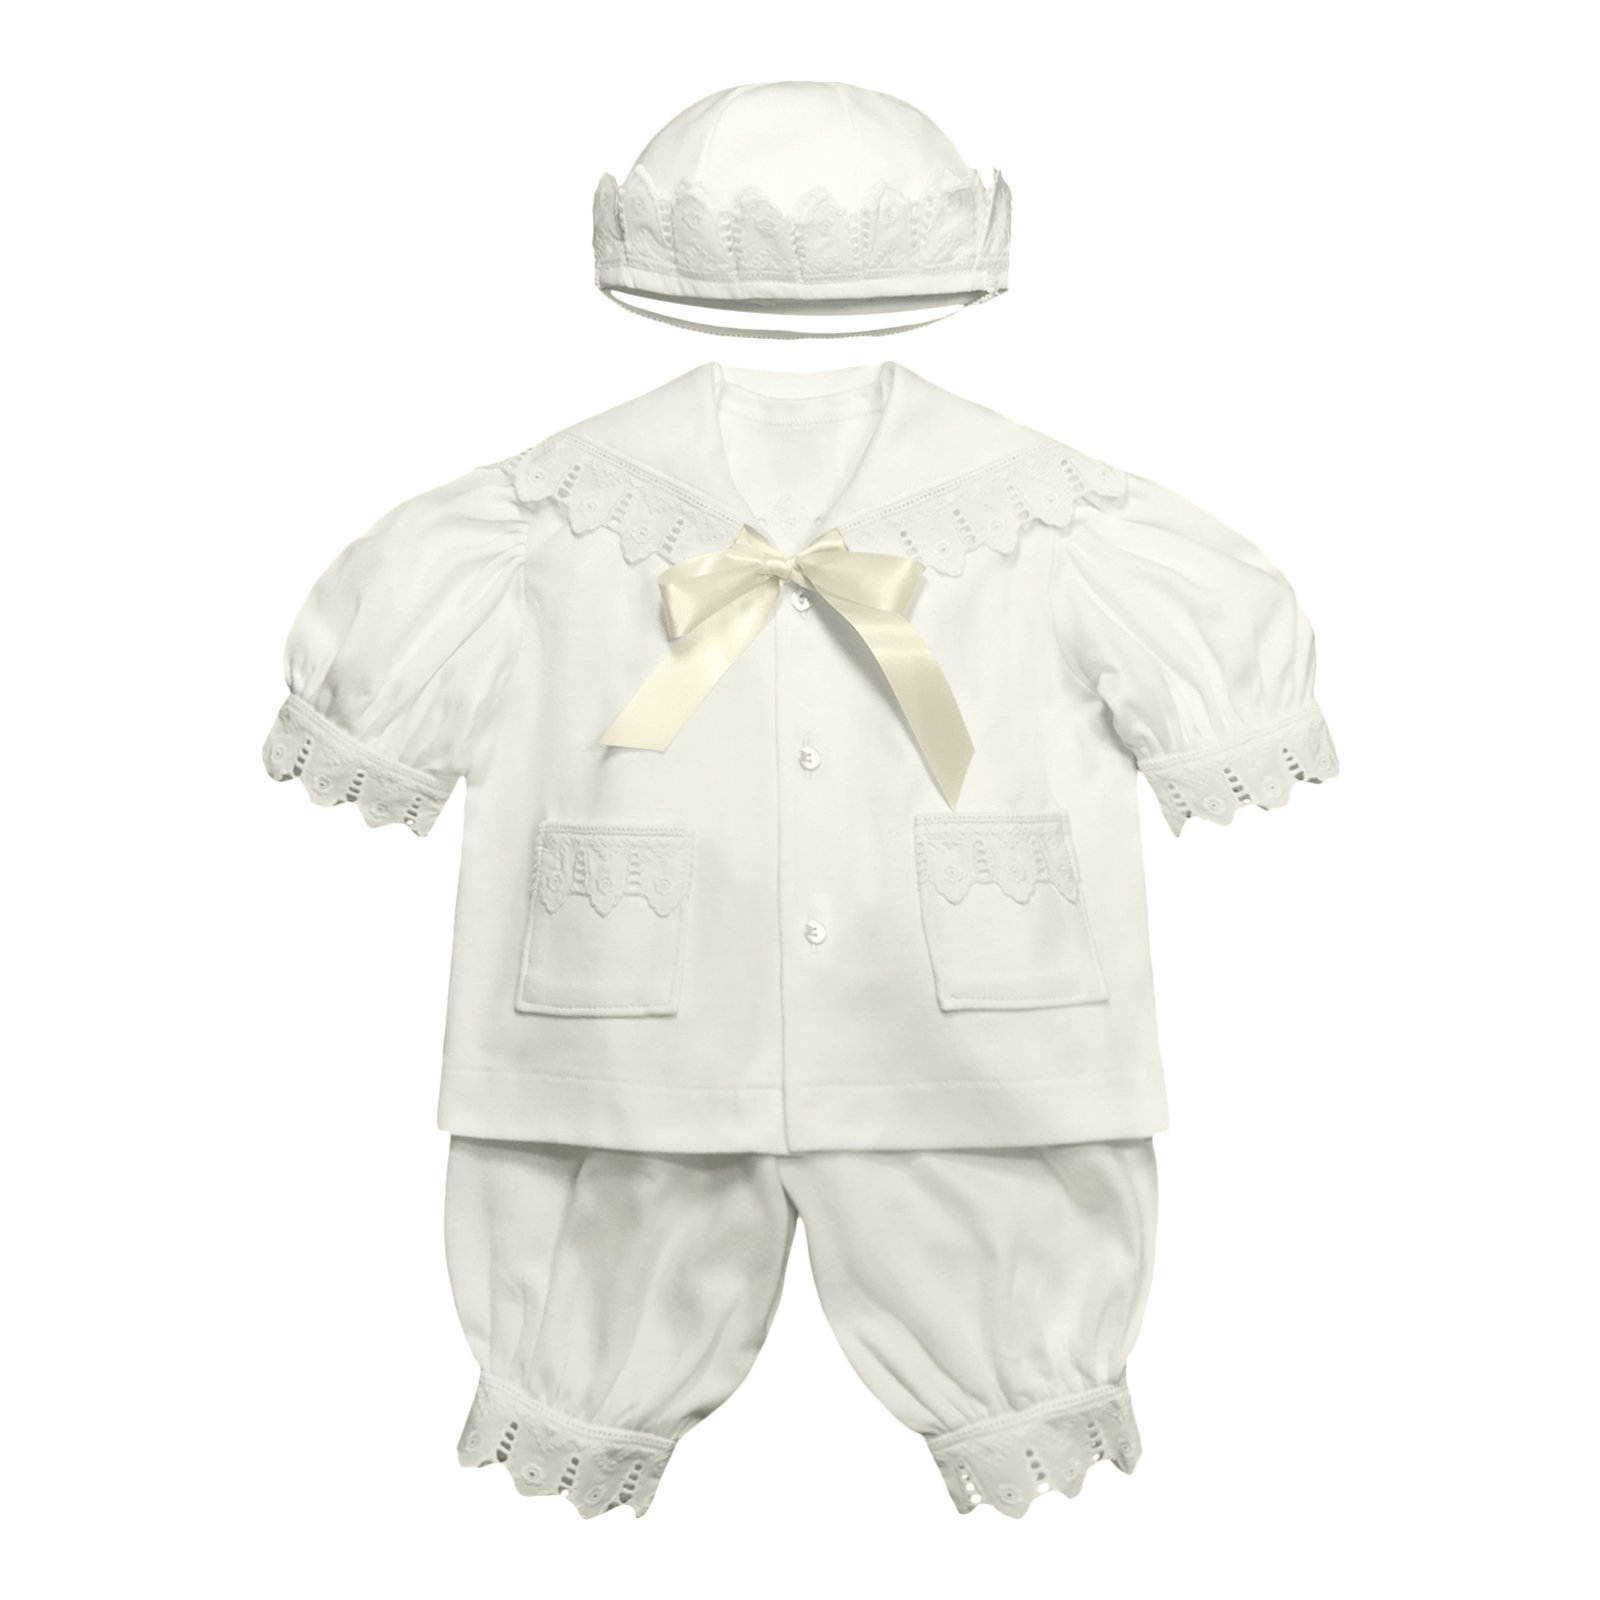 Victorian Organics Baby Boy Sailor Set 4 Piece Organic Cotton Knit and Eyelet Lace Trim Jacket Hat Bodysuit and Pantaloons (6M 6-9 Months) by Victorian Organics